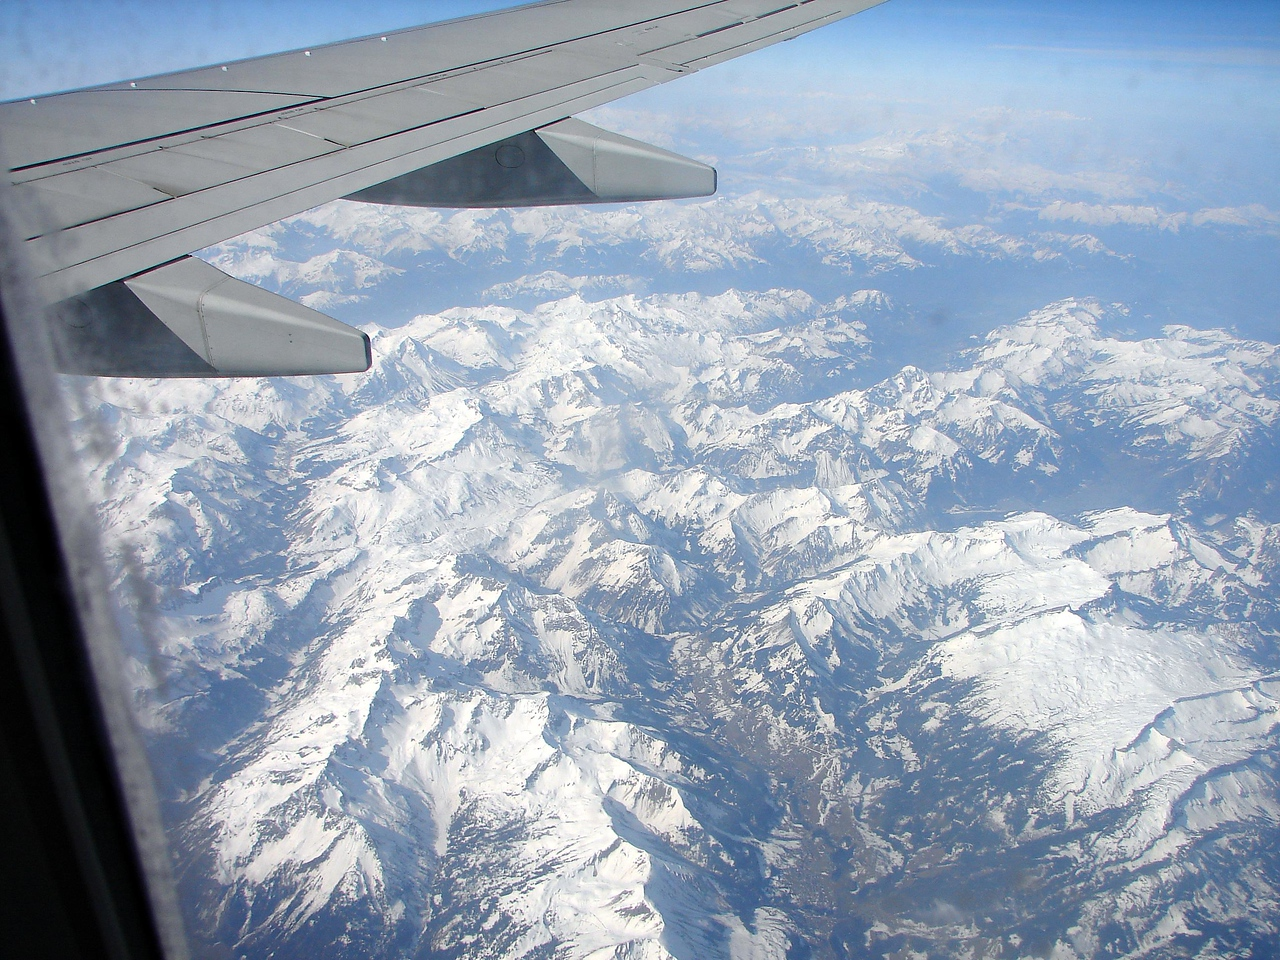 The Alps en route from england to italy. mmmmm.